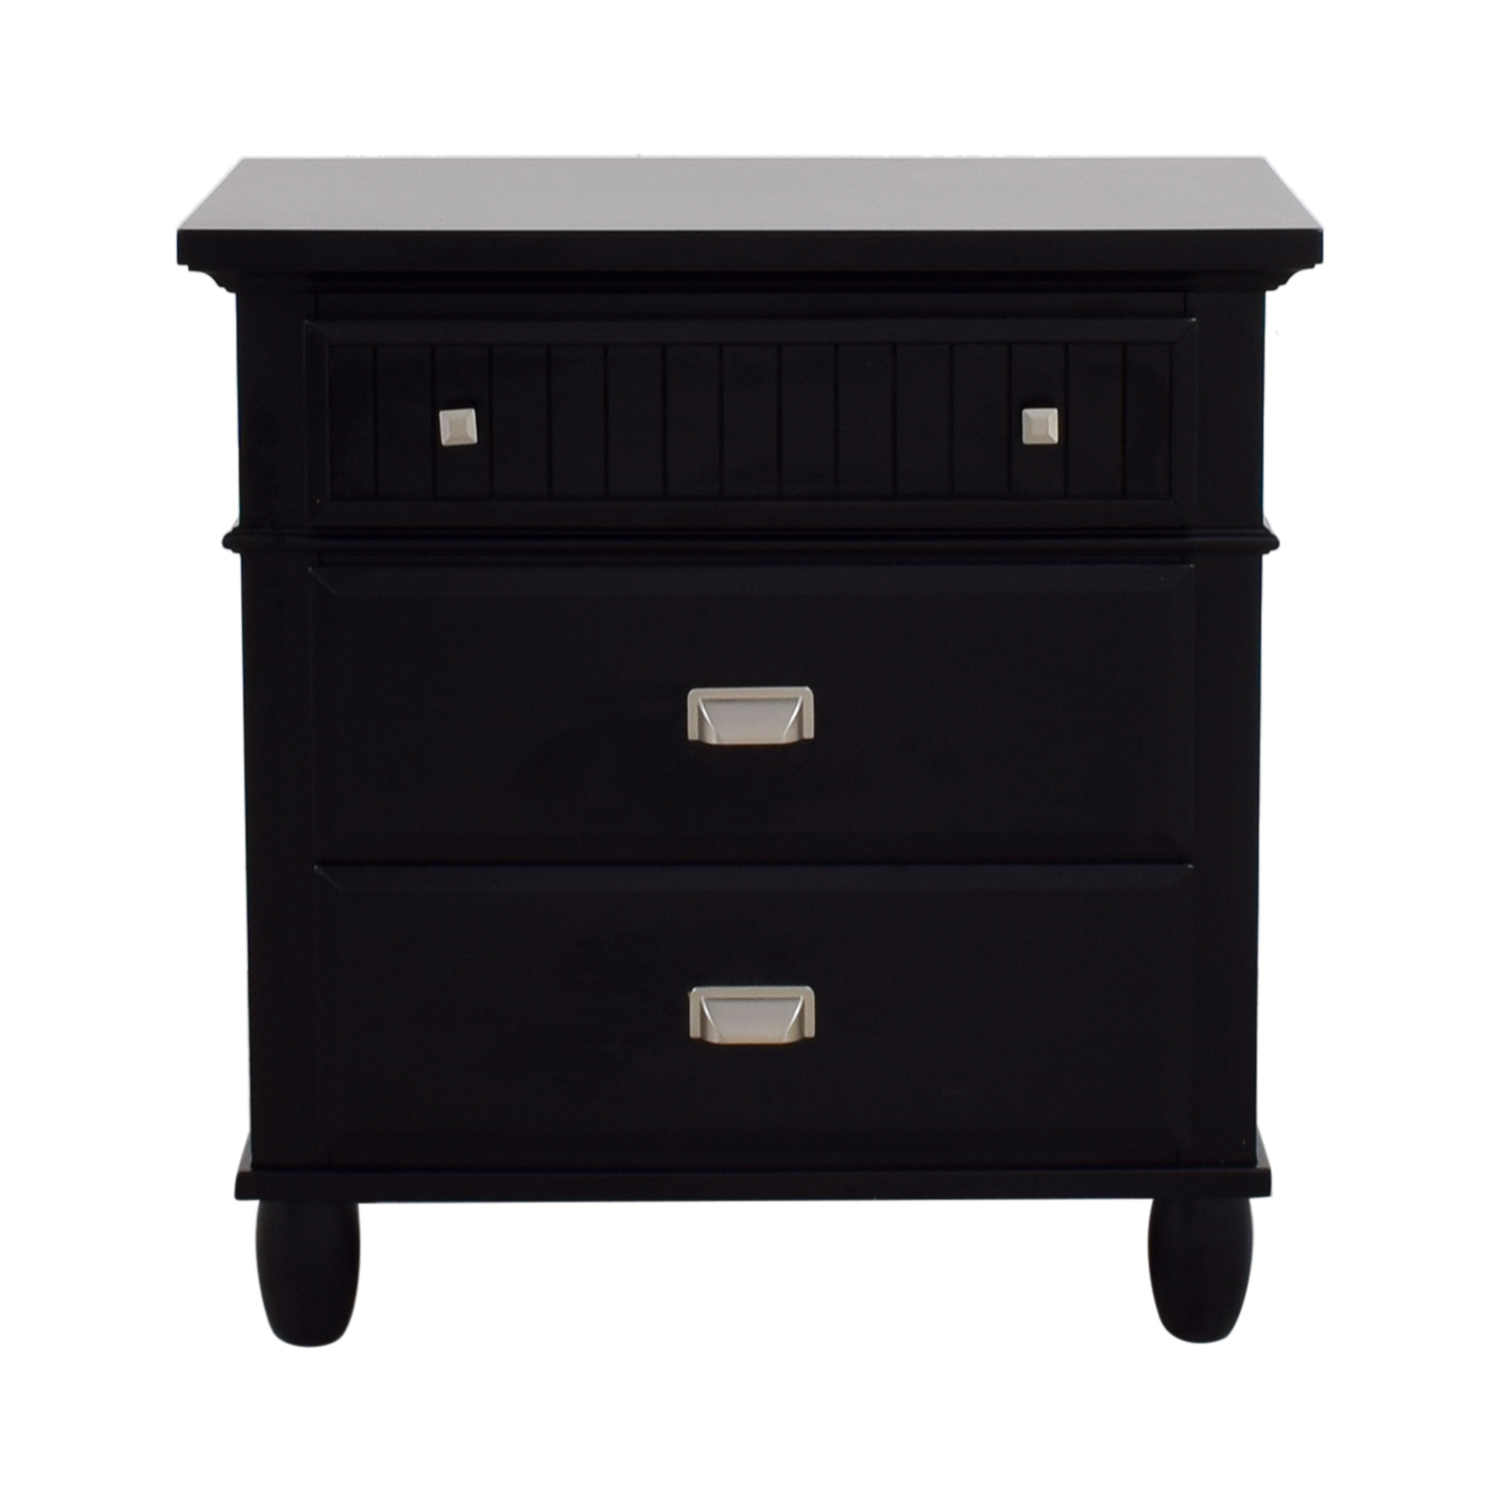 Black Three-Drawer Night Stand on sale